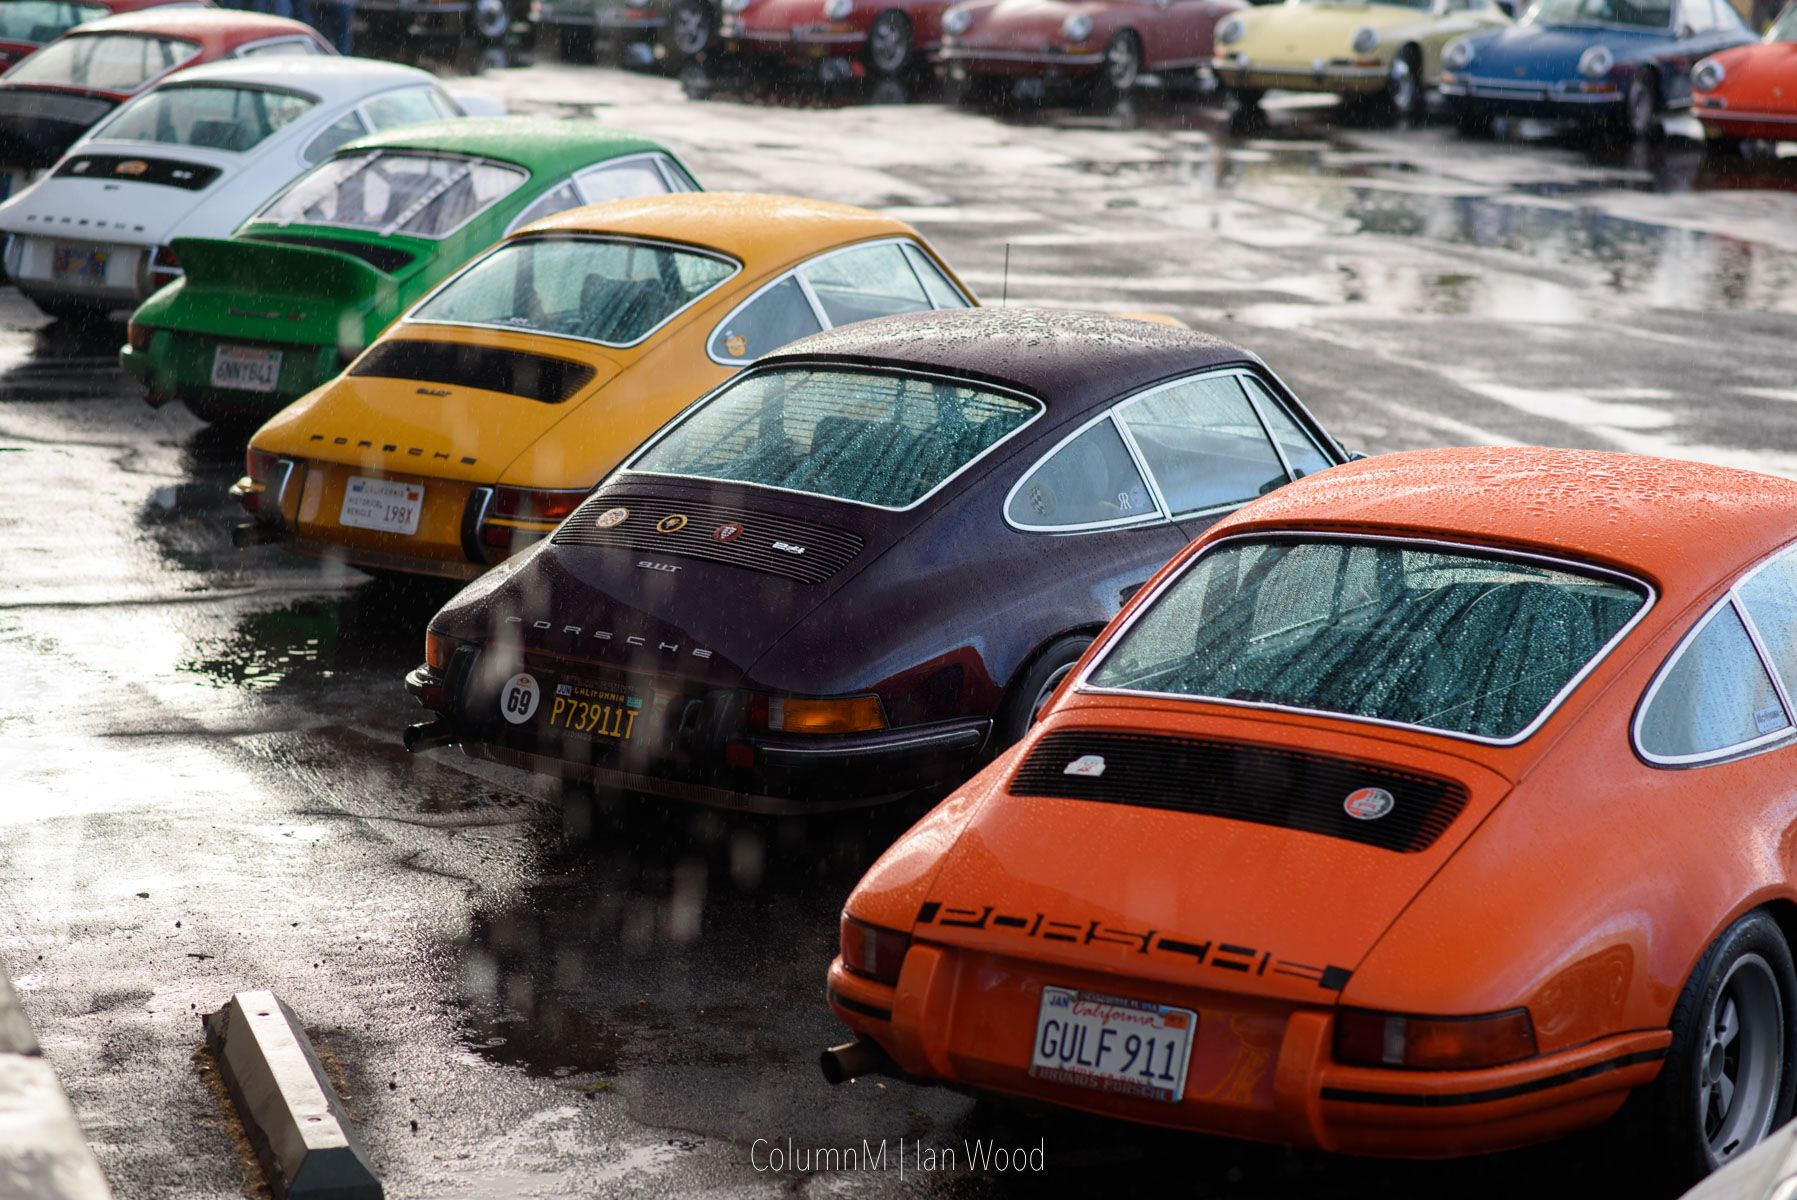 luftgekühlt 4: the most beautiful air cooled porsche parking in the